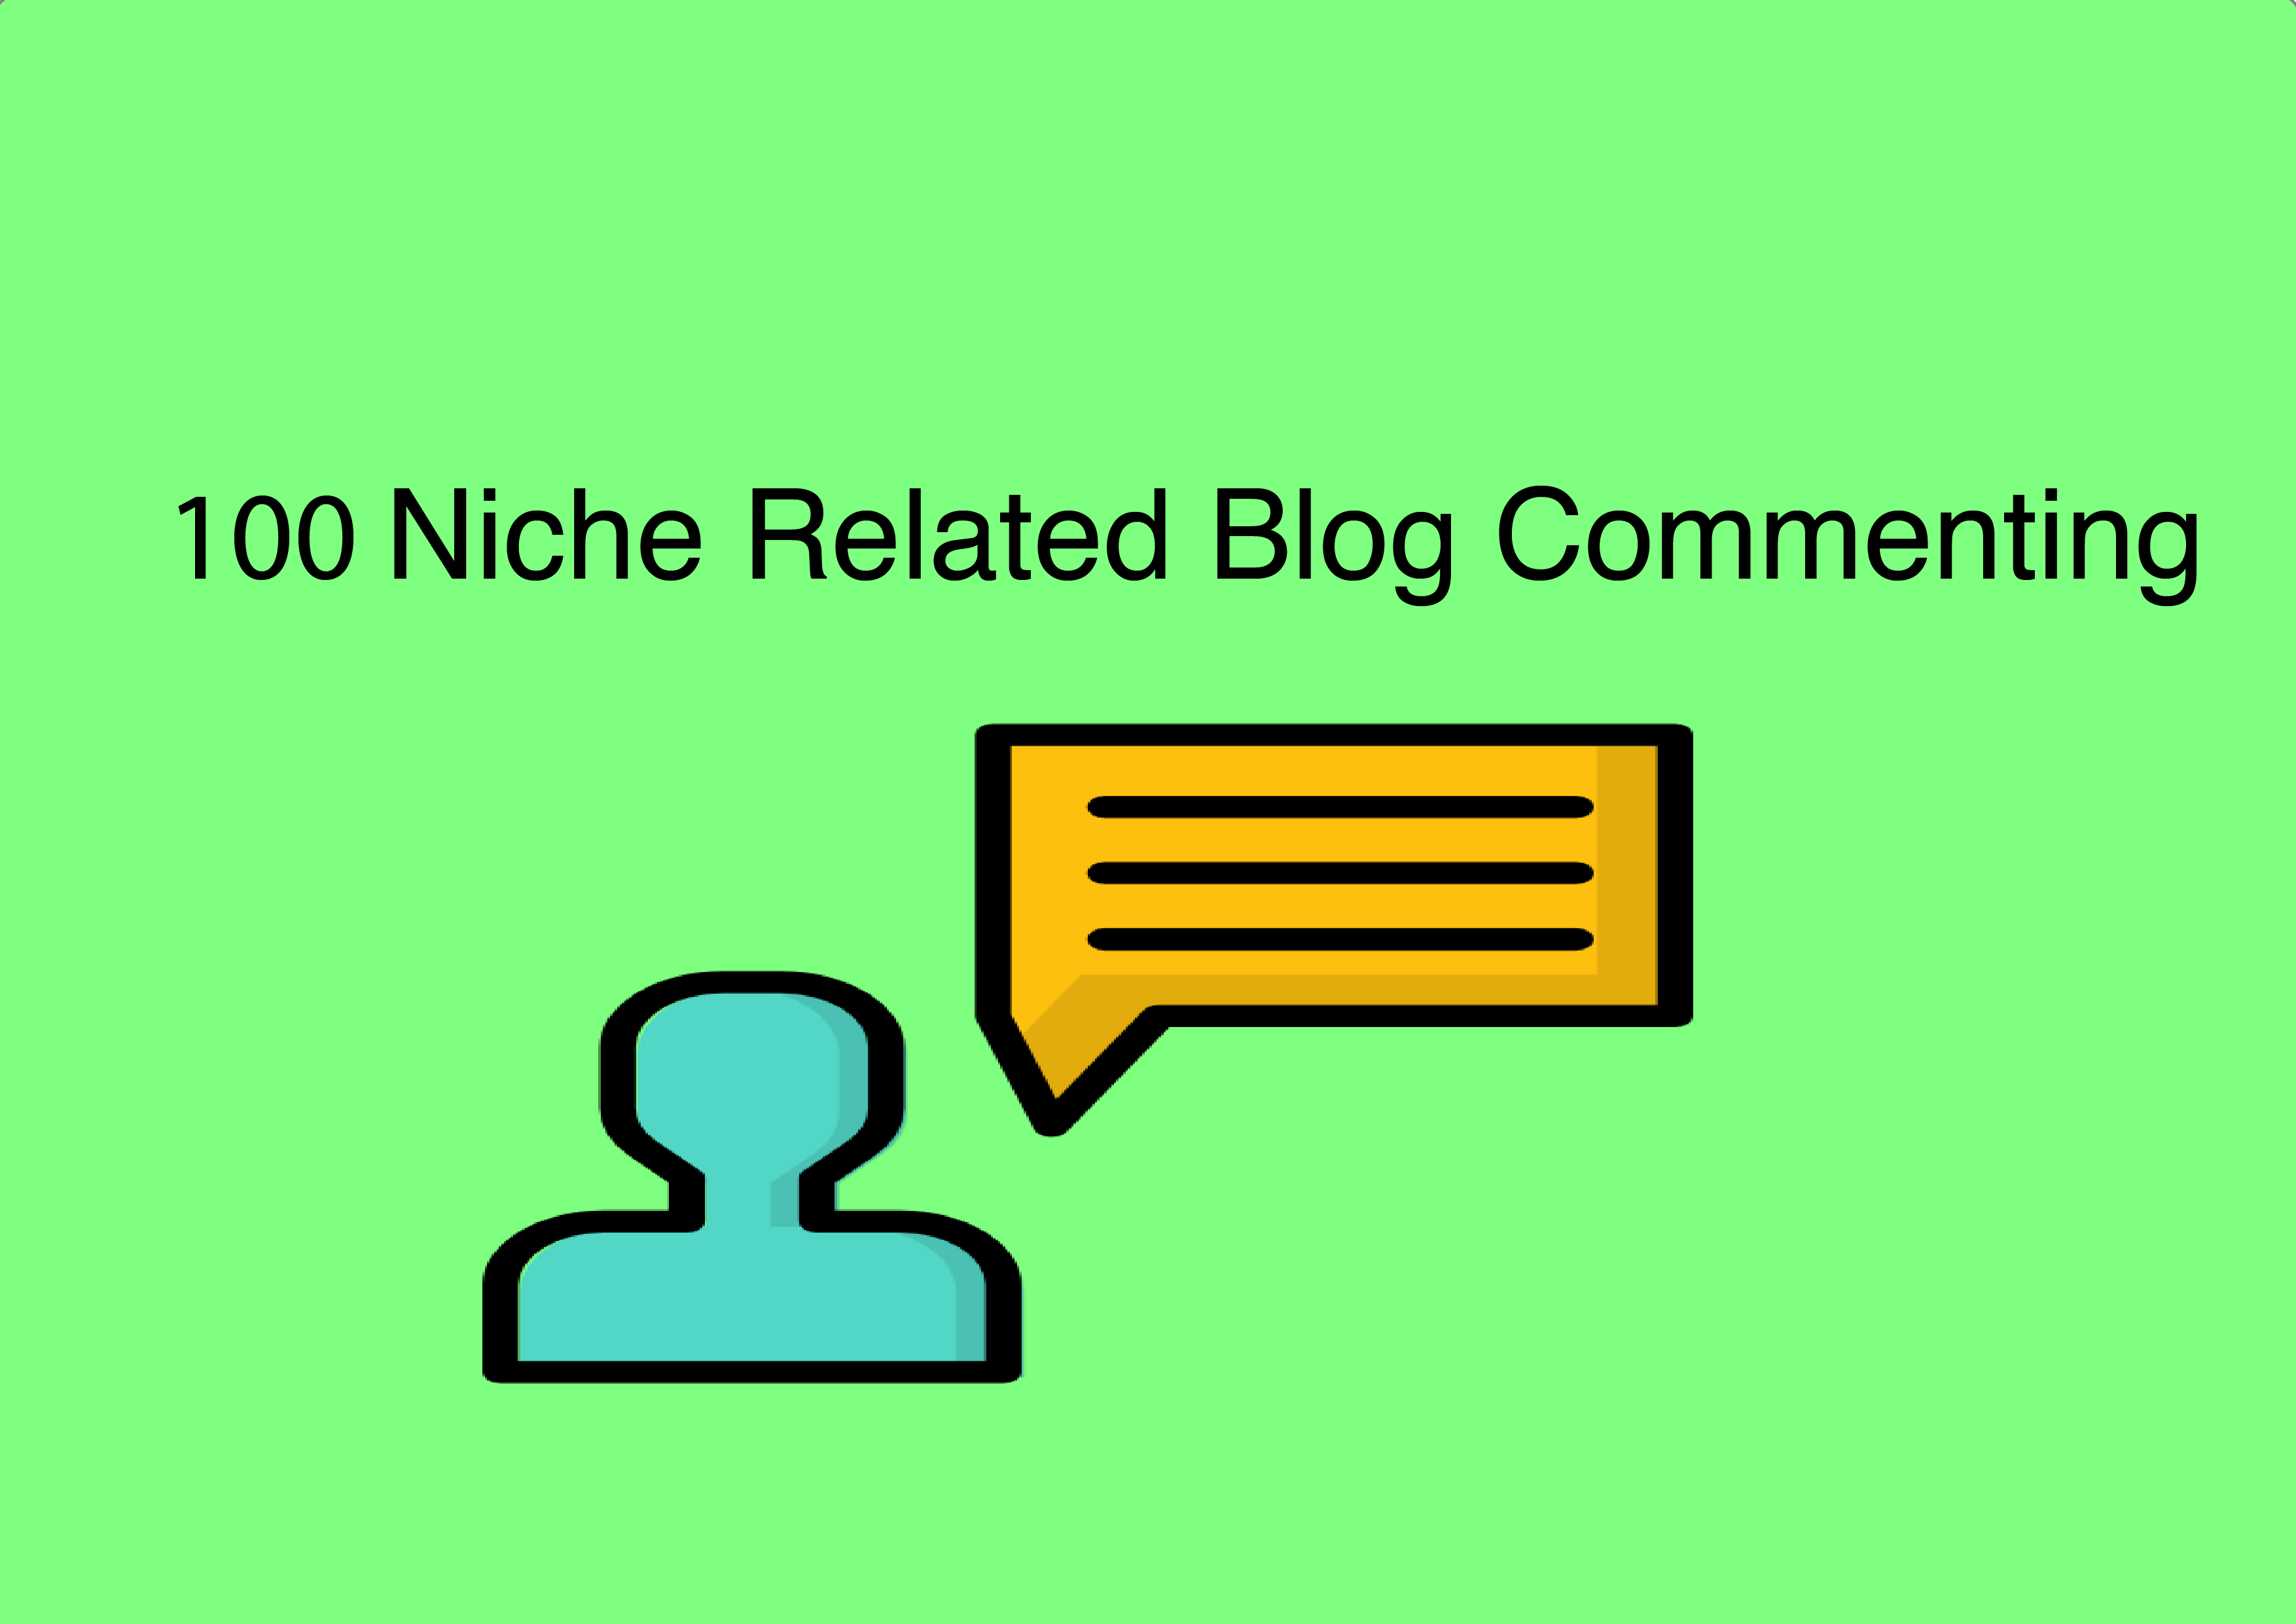 100 Niche Related Blog Comments